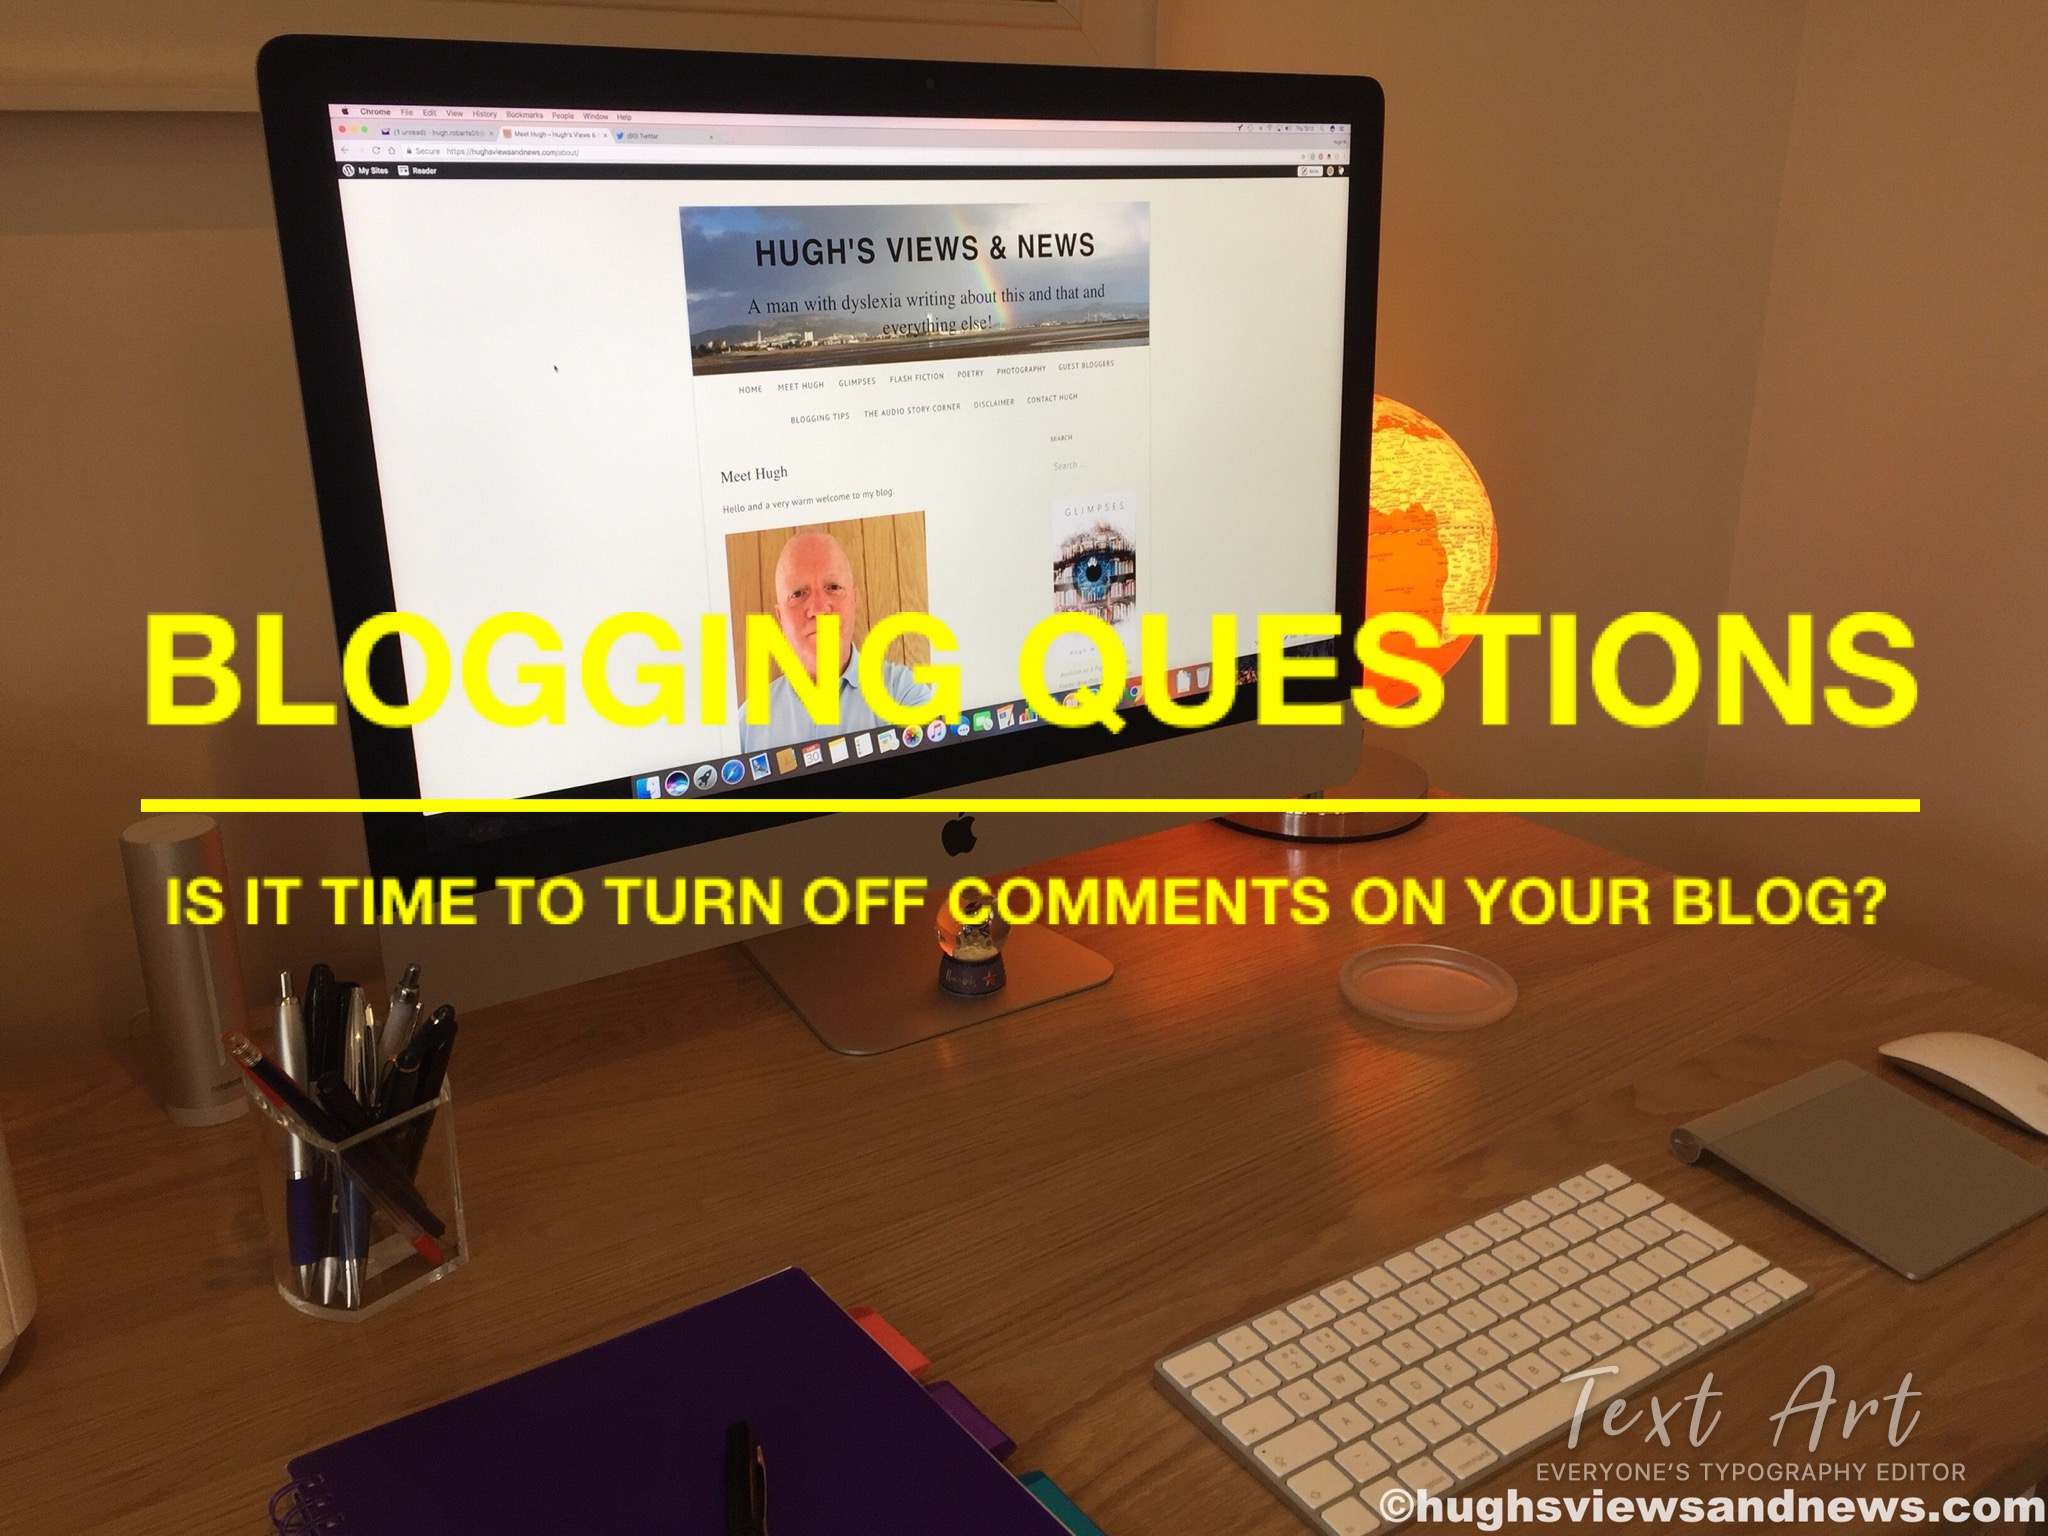 Is it time to turn off comments on your blog?